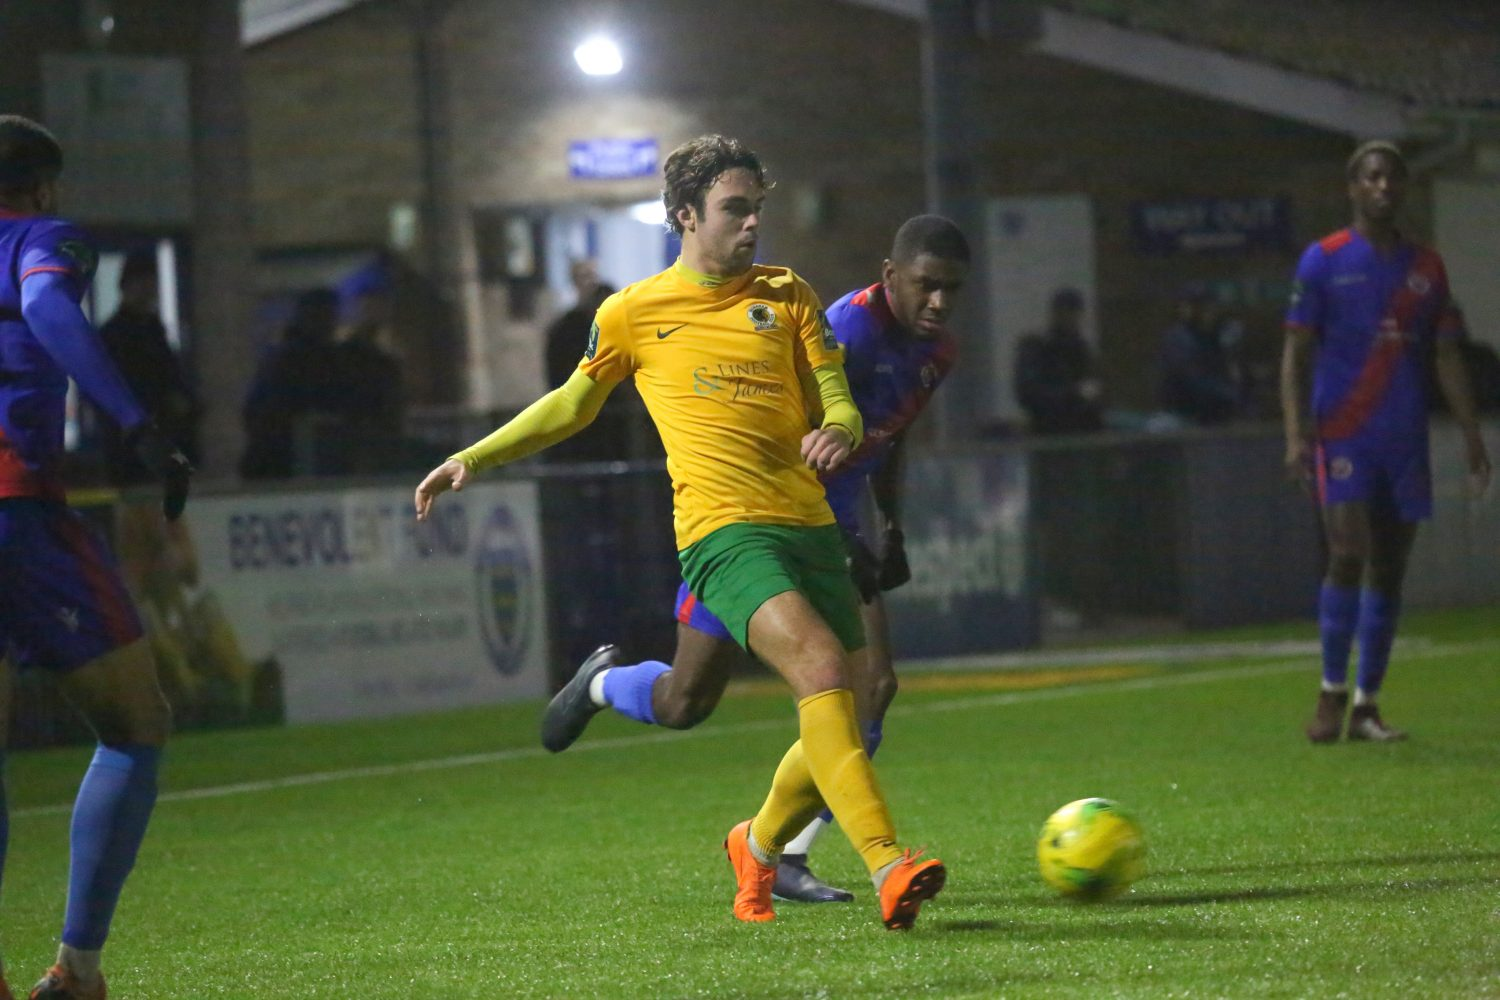 Horsham vs Greenwich Borough